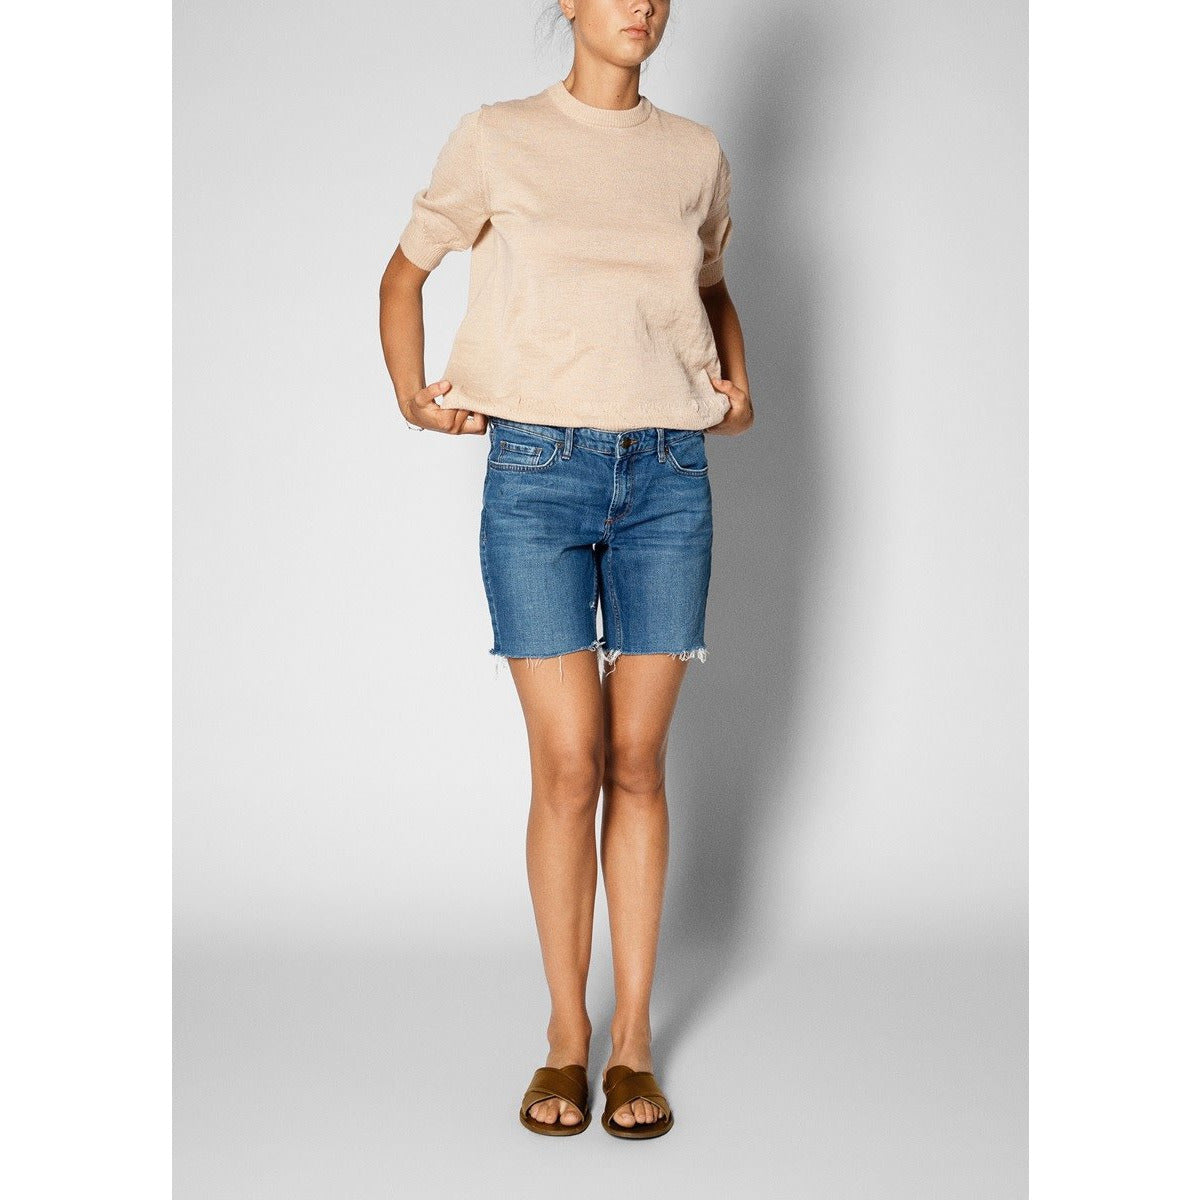 model wearing light pink short sleeve sweater with a pair of denim shorts